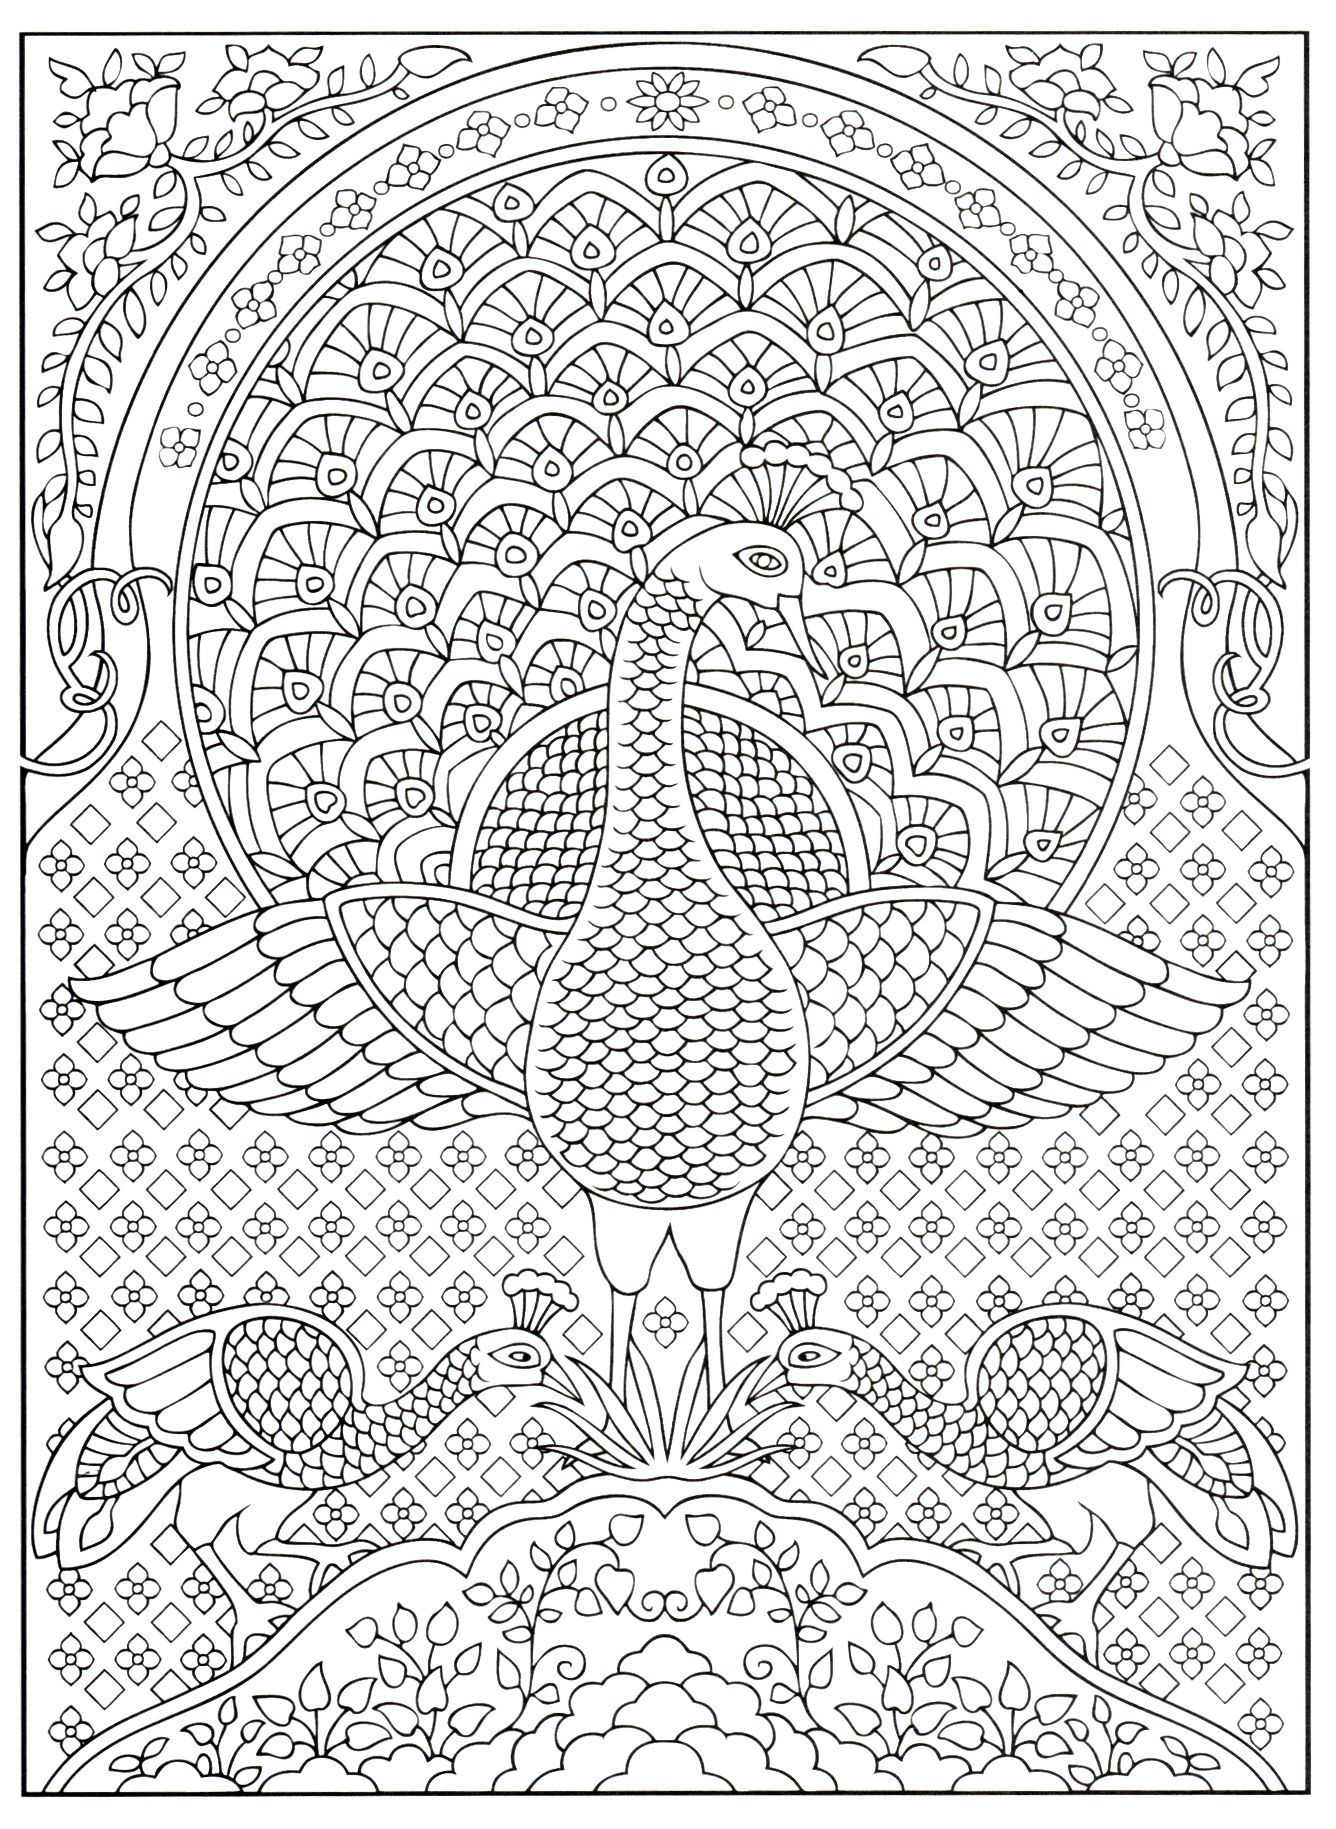 Creative Haven S Peacock Designs Peacock Coloring Pages